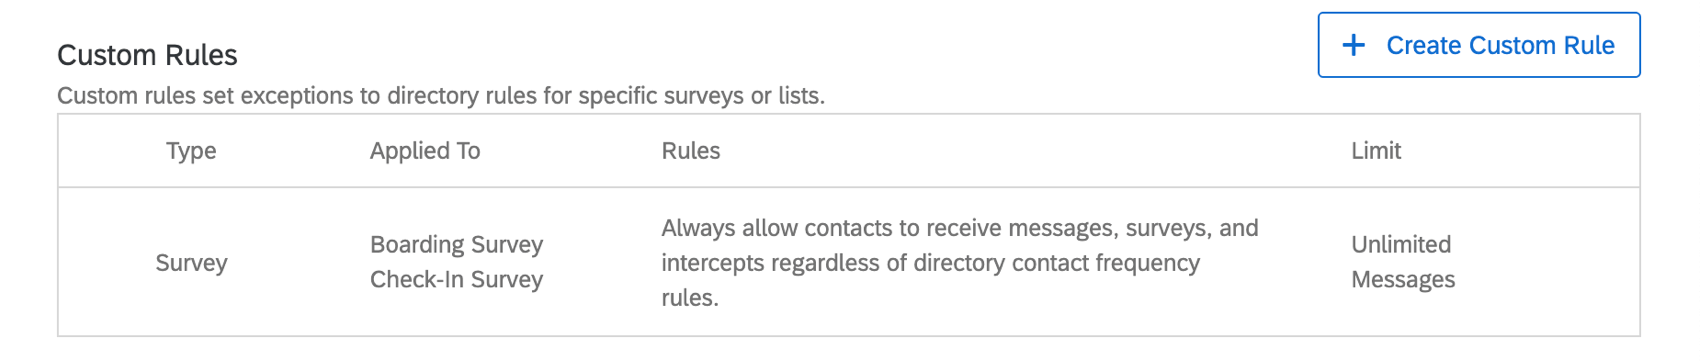 A custom rule that says it's a survey type of rule, shows the boarding and check-in surveys, and says Always allow contacts to receive messages, surveys, and intercepts regardless of directory contact frequency rules.